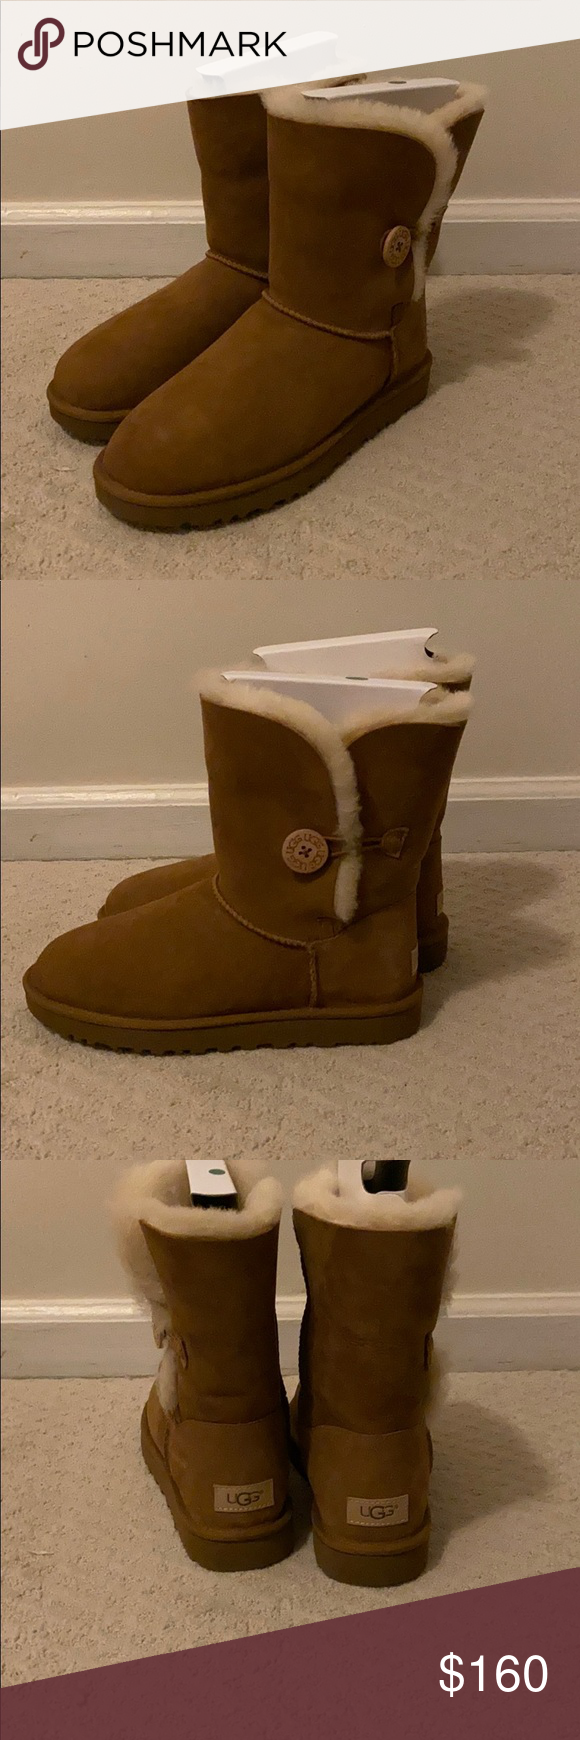 ugg jade high heeled ankle boots chestnut women shoes